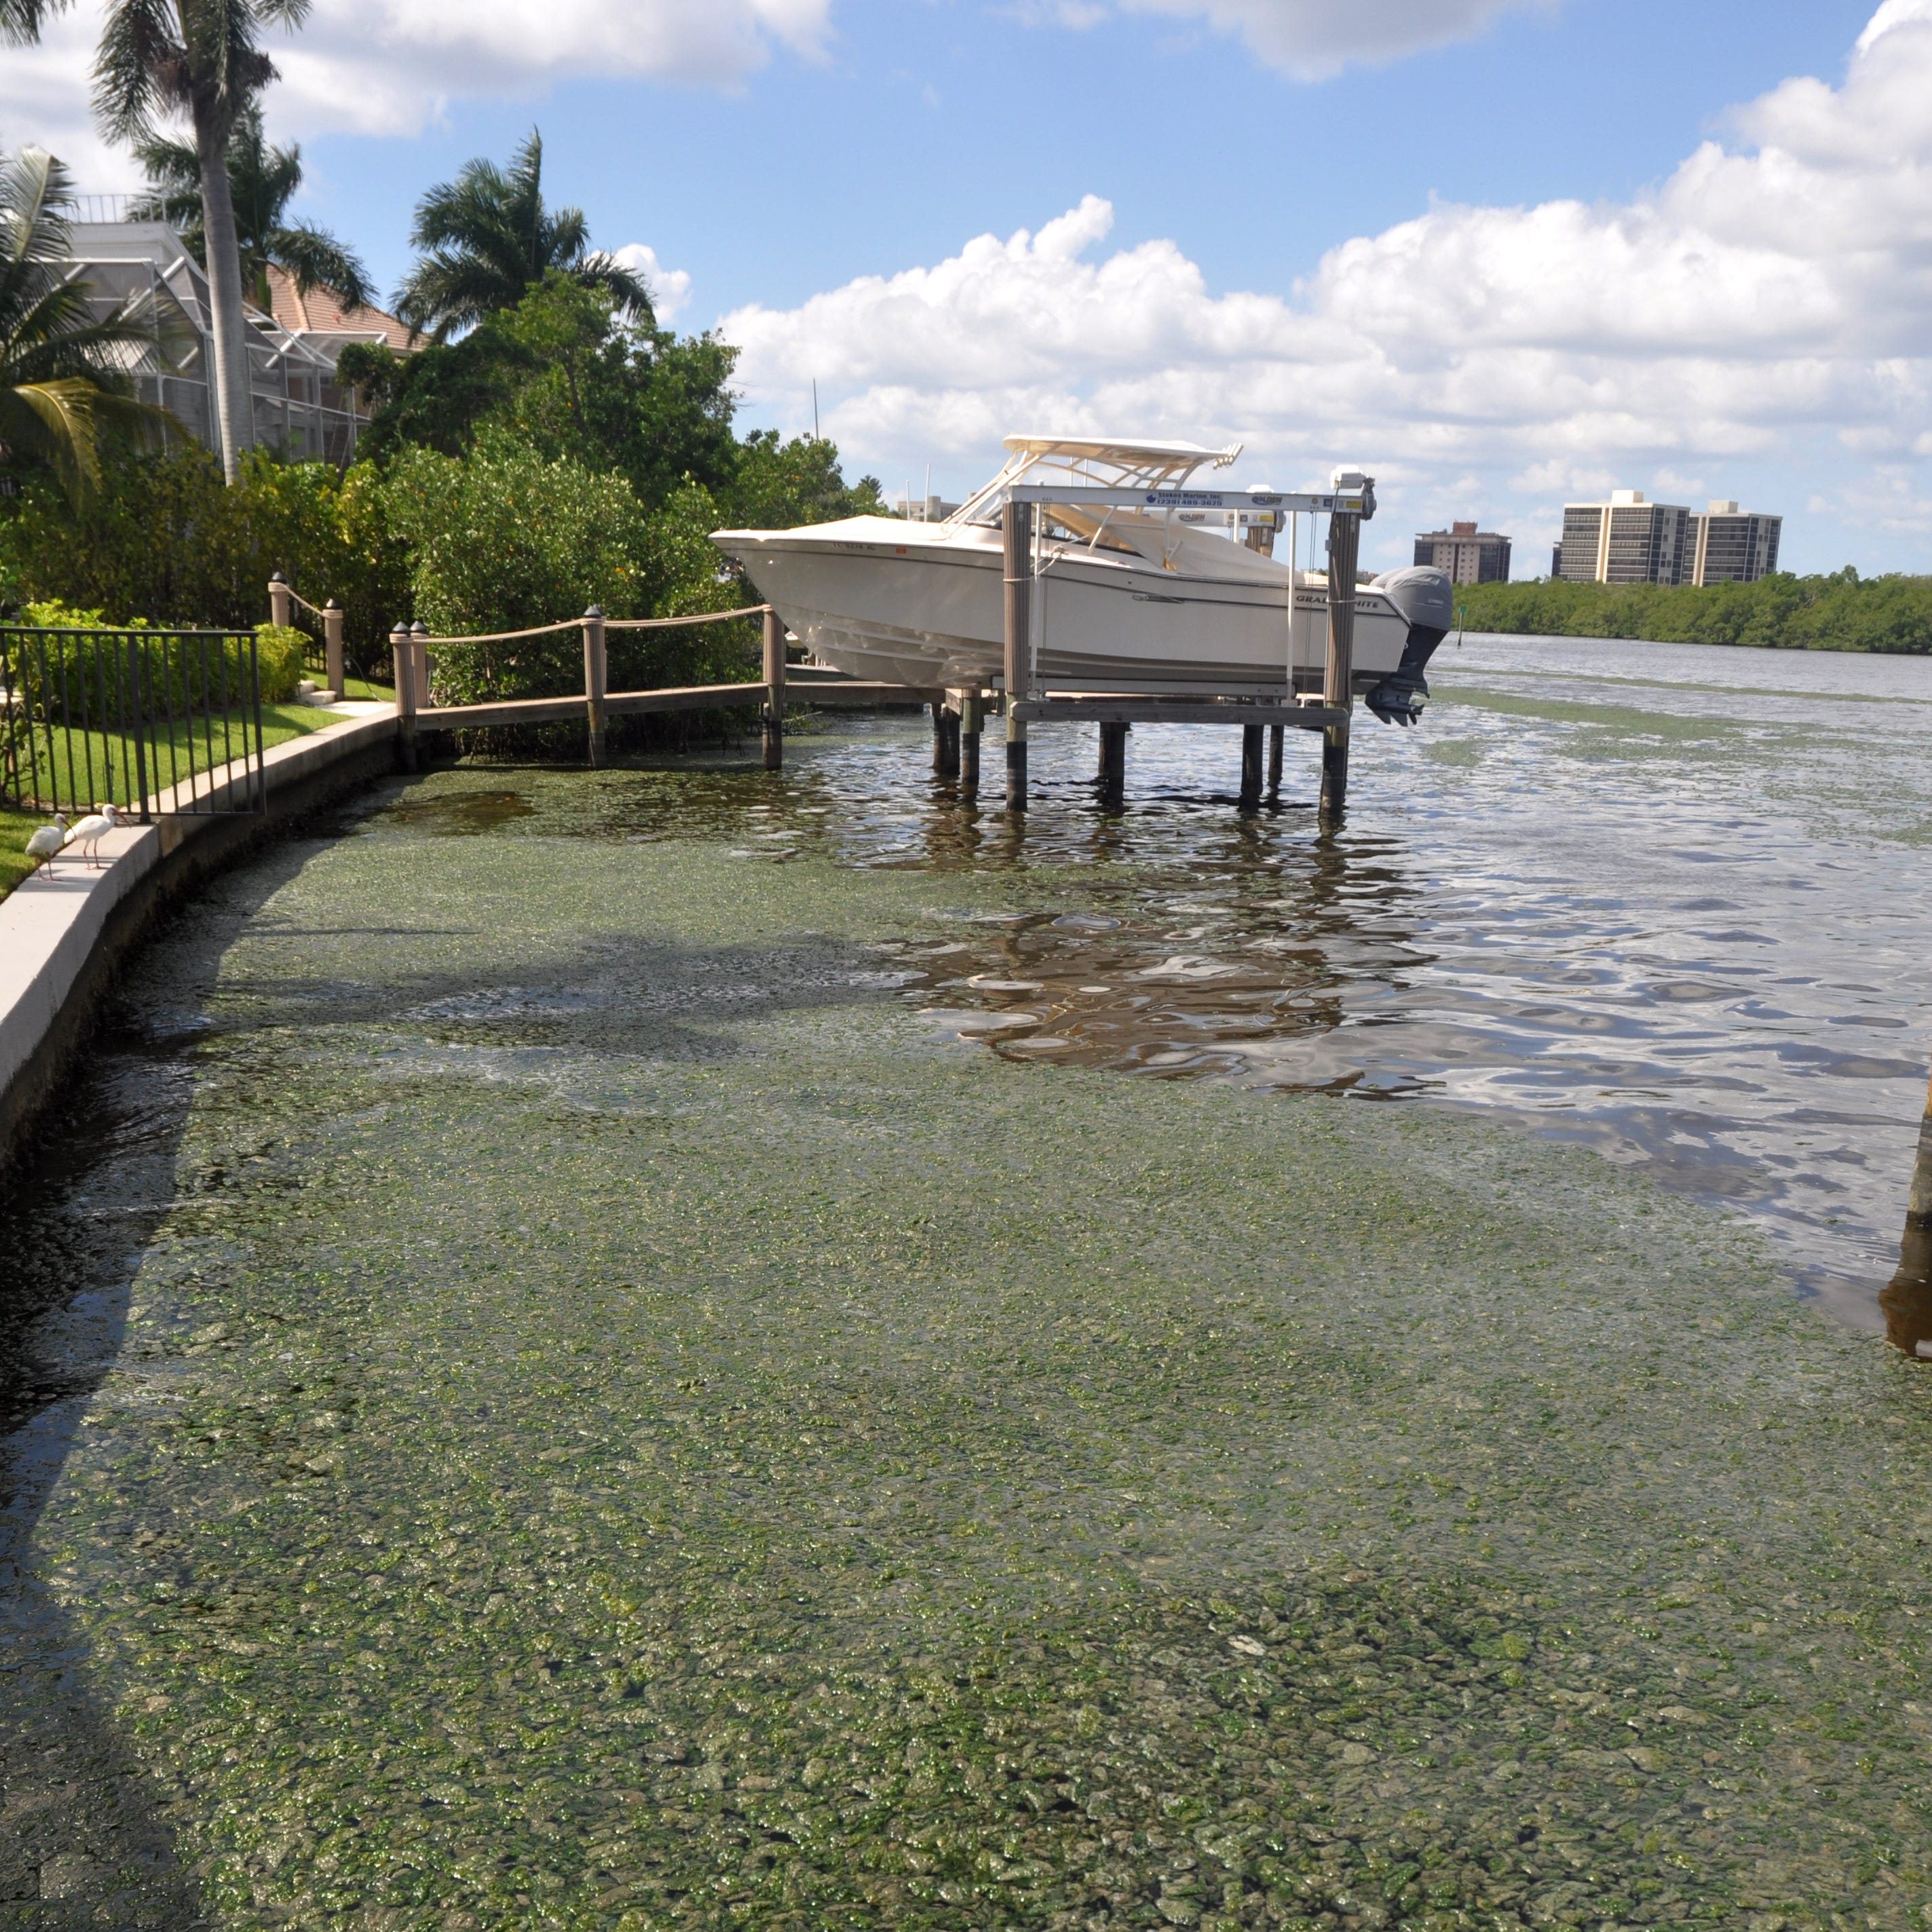 Editorial: CDC a welcome entry in quest to see whether SW Florida algal blooms harm humans